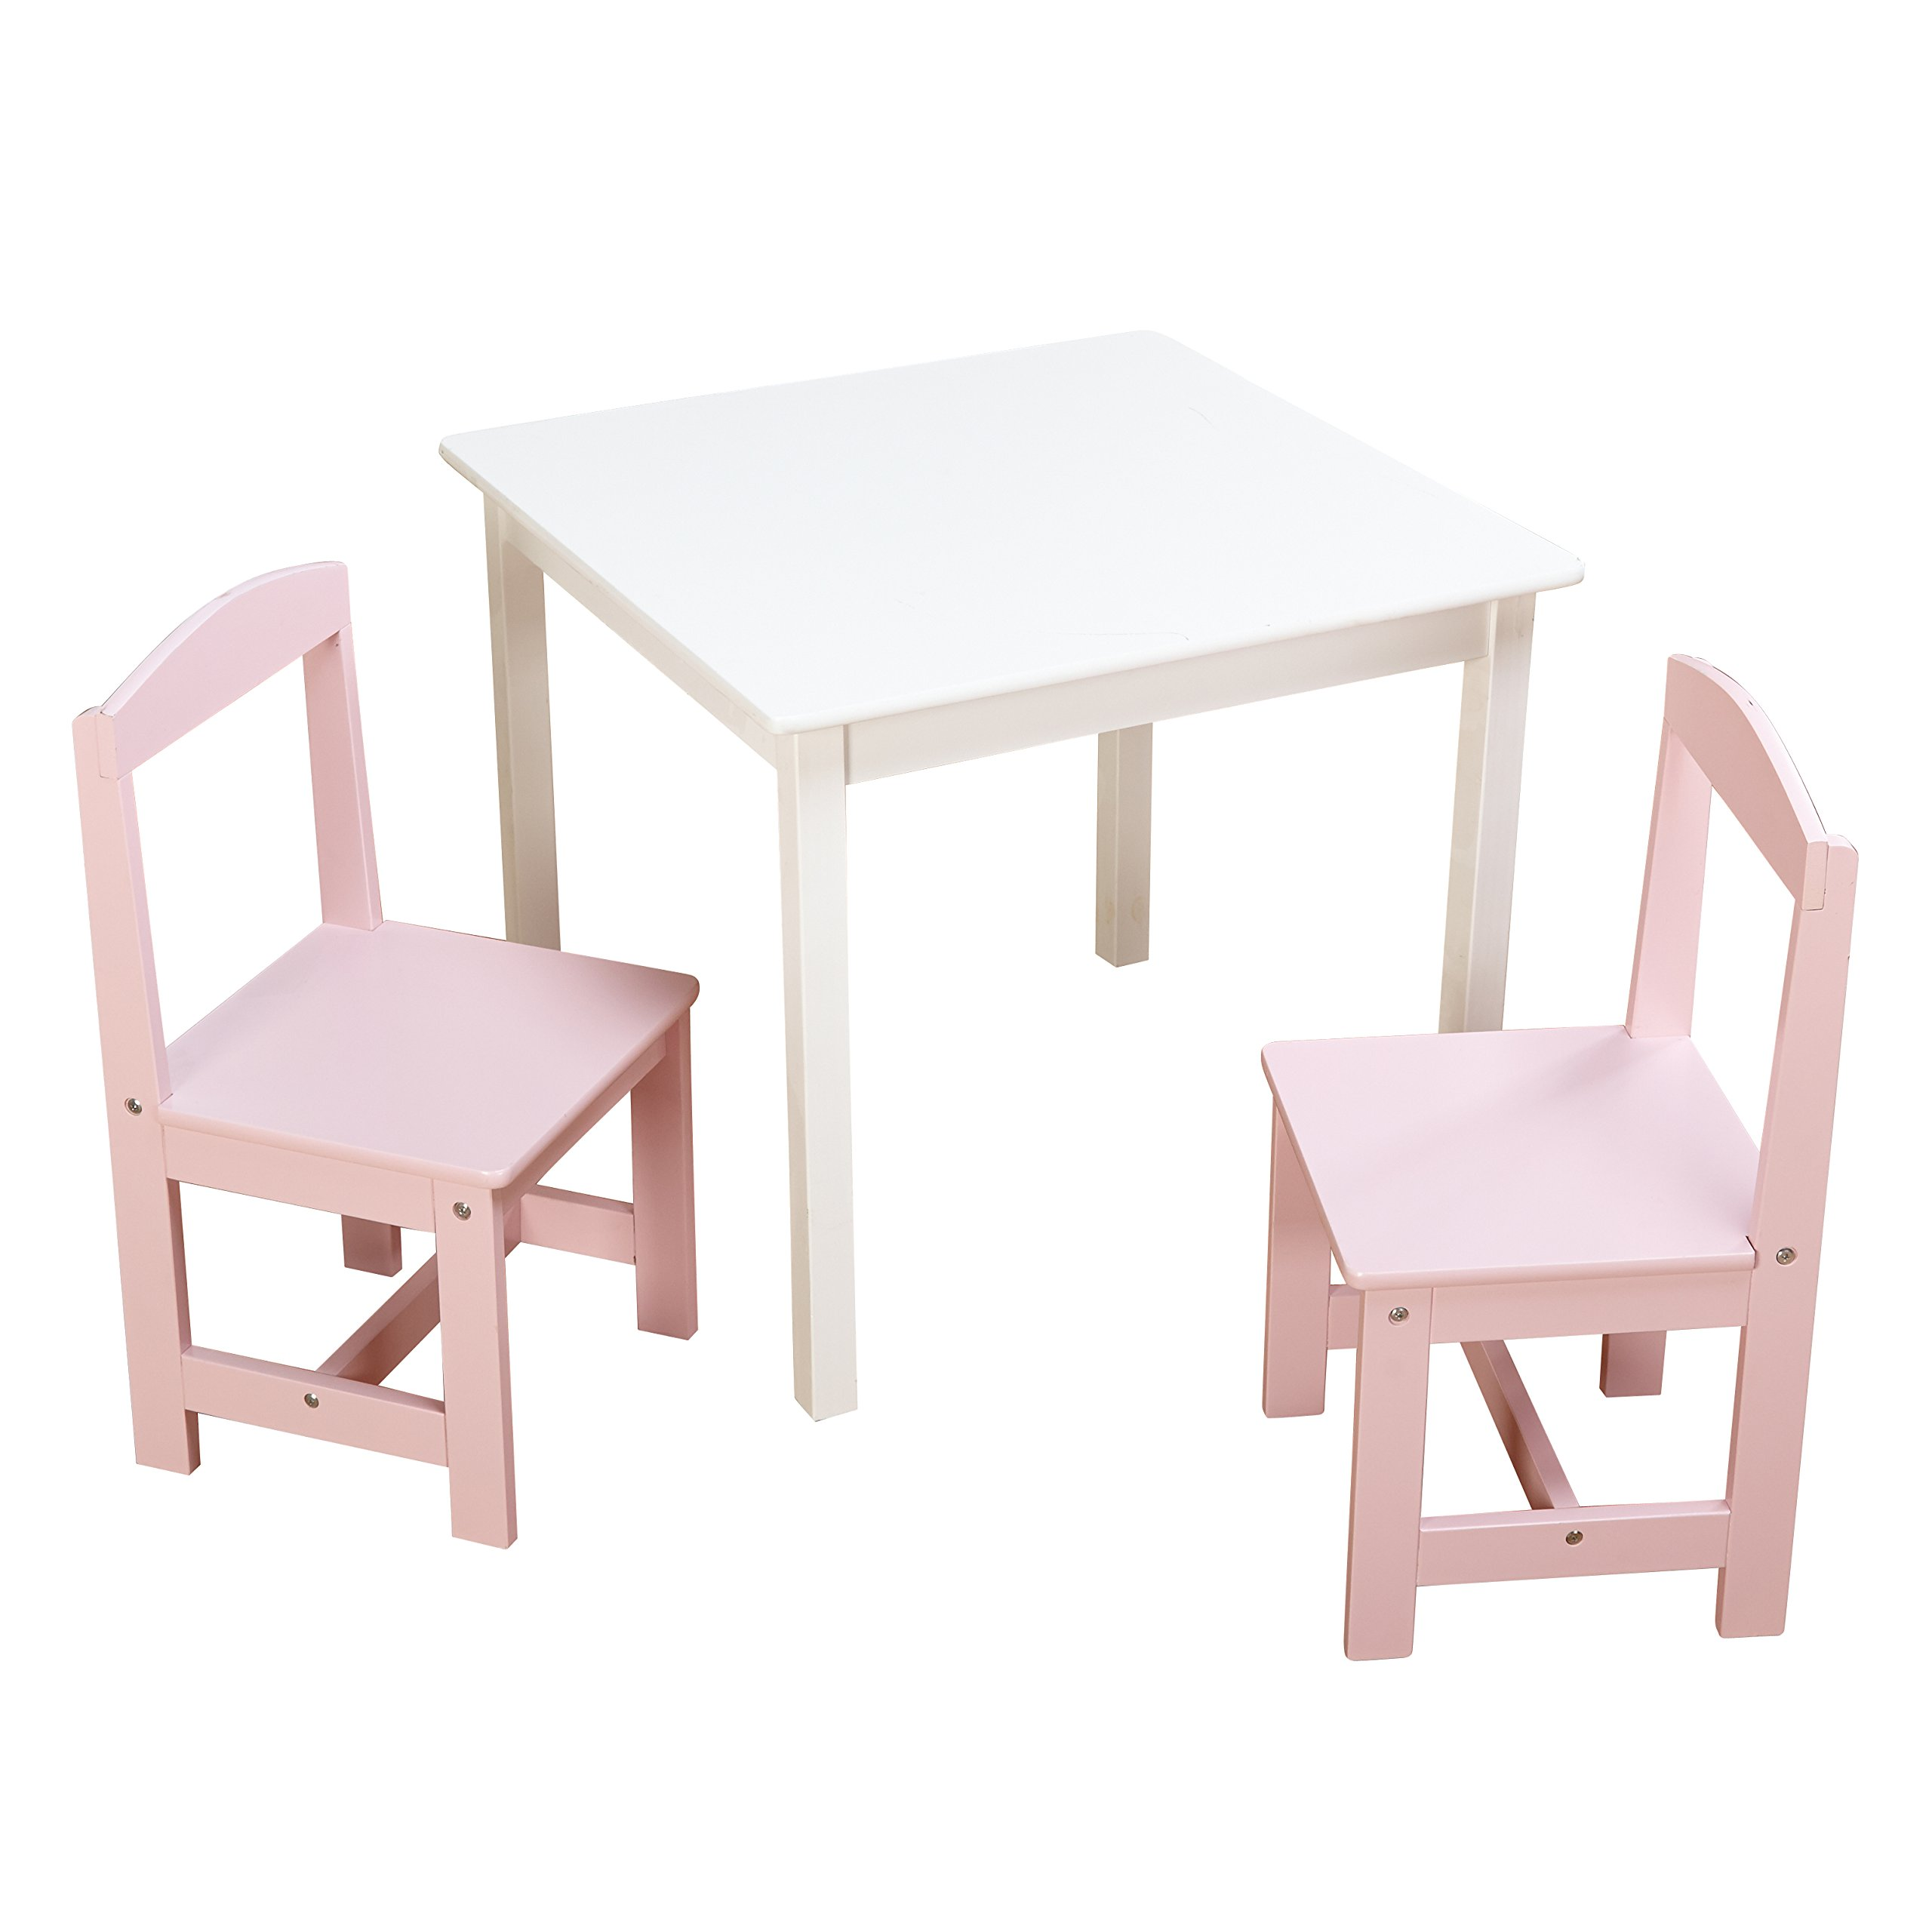 Target Marketing Systems 91120WHP Hayden 3 Pc Kids Table and Chairs, White/Pink